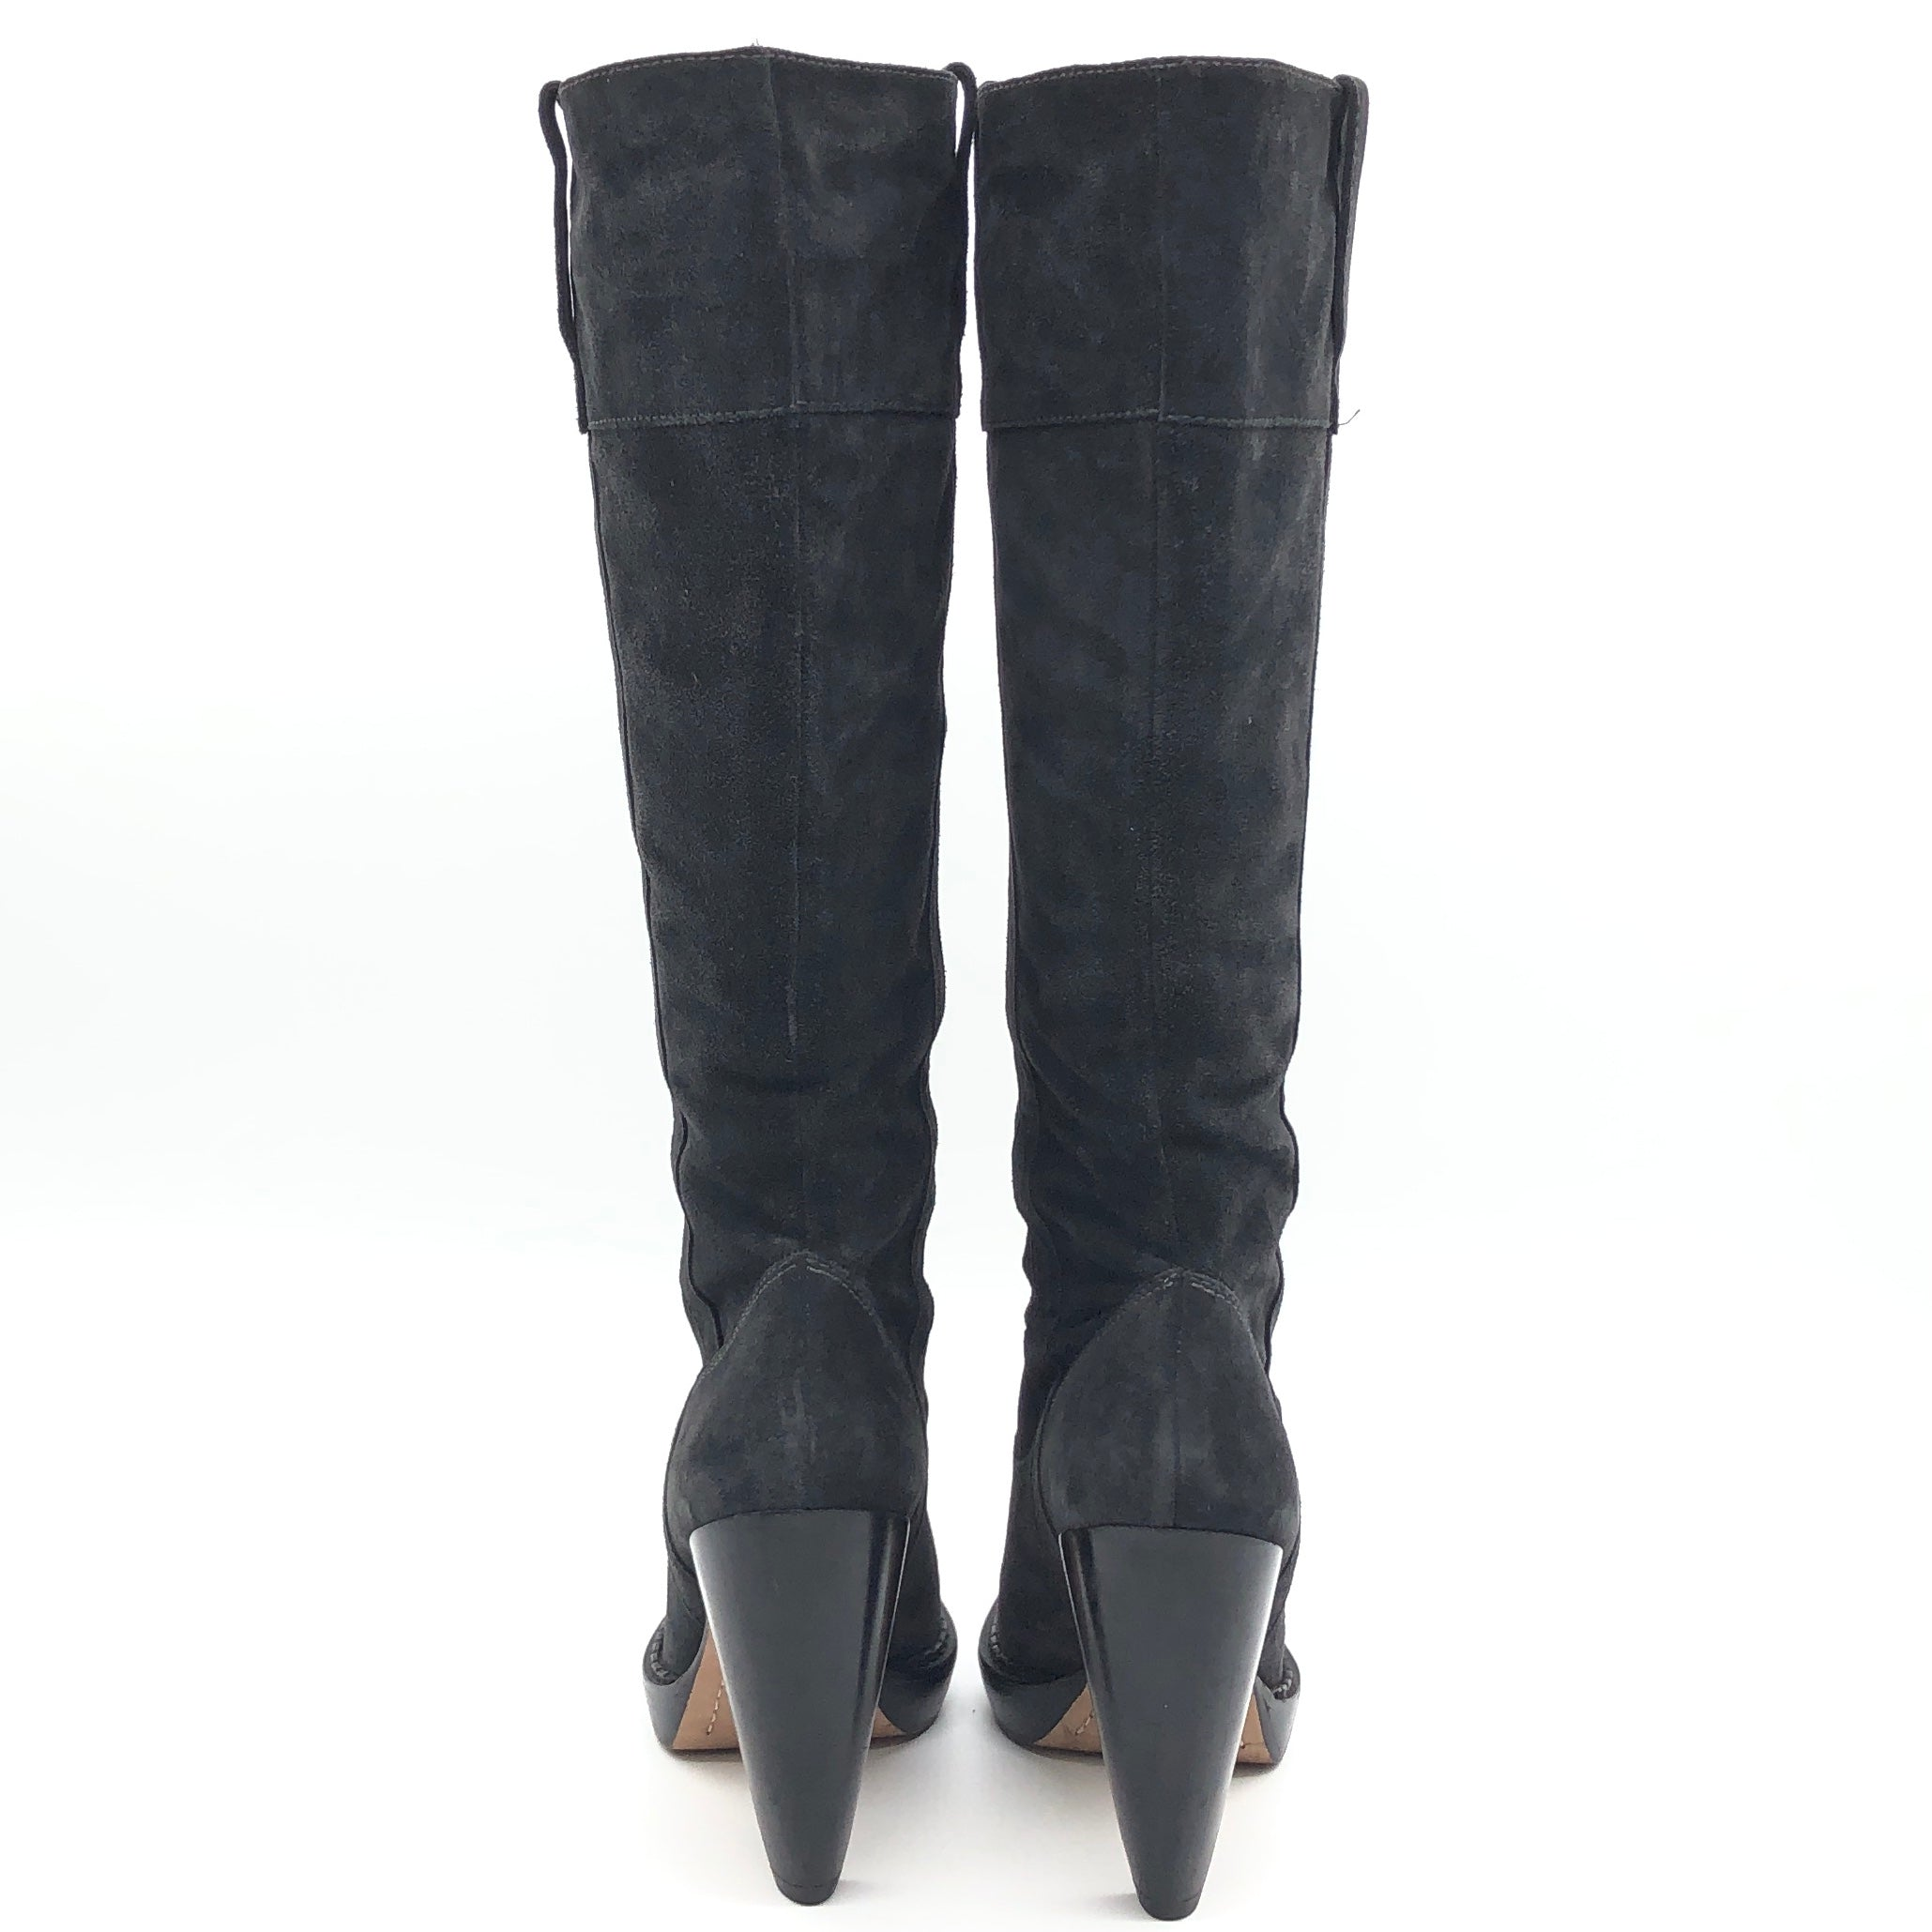 "Photo #3 - BRAND: MICHAEL KORS <BR>STYLE: BOOTS KNEE <BR>COLOR: BLACK <BR>SIZE: 10 <BR>SKU: 262-262101-2081<BR>CALF OPENING CIRCUMFERENCE: 16.5"" <BR>LOWER CIRCUMFERENCE: 12.5""<BR>NARROW TOES • GENTLE WEAR • 5"" HEEL HEIGHT • 15"" BOOTS HEIGHT •"